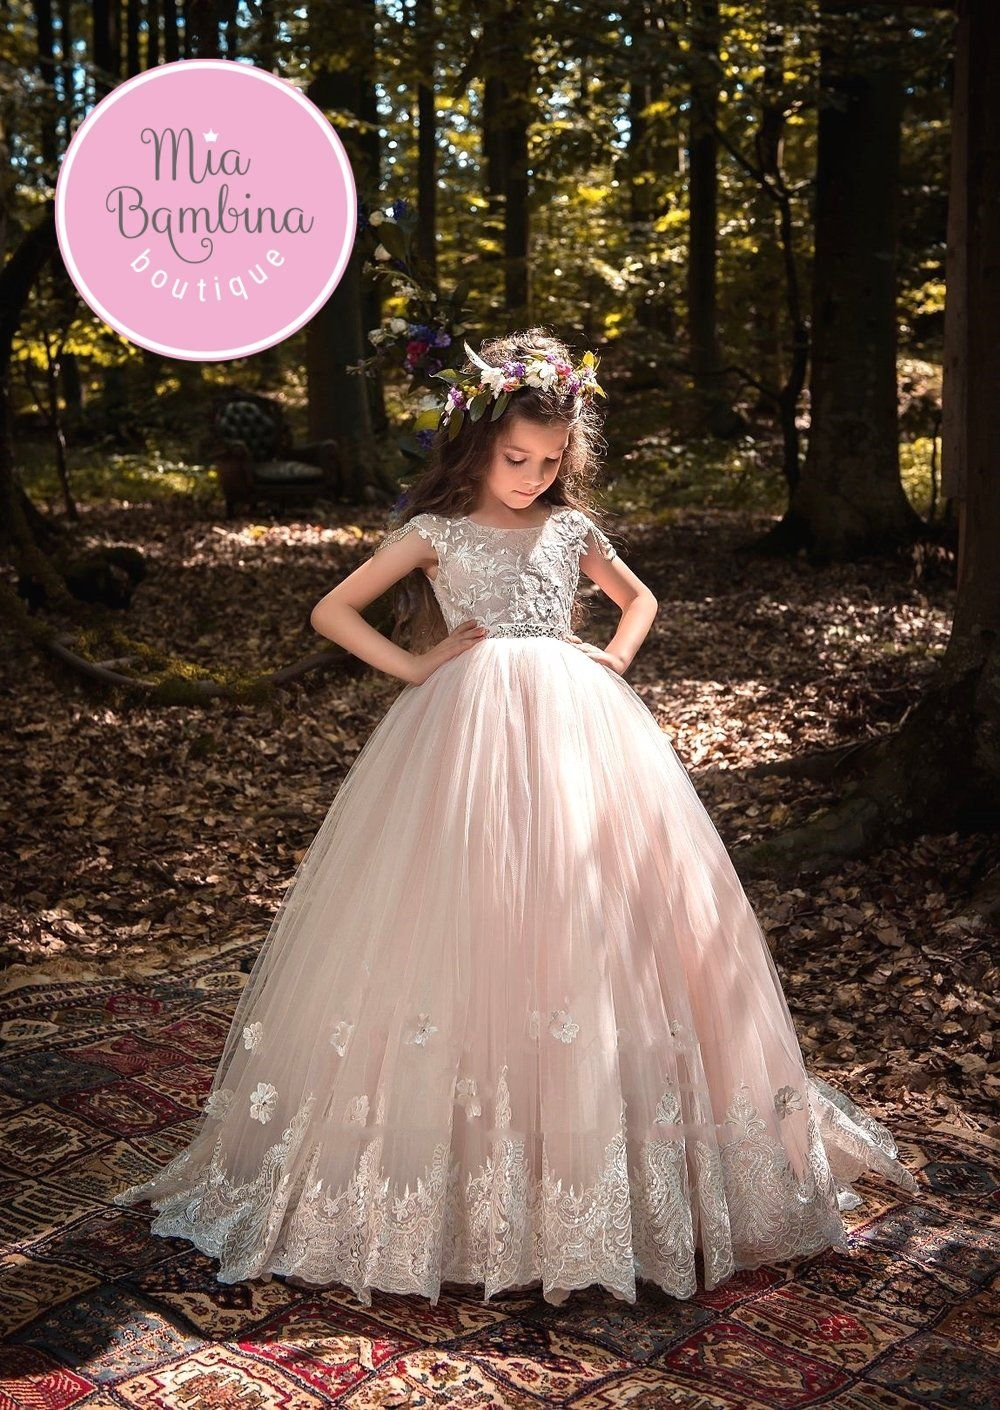 2565e04543 The Bergamo dress by Mia Bambina Boutique. Tulle and Lace ball gown for  weddings